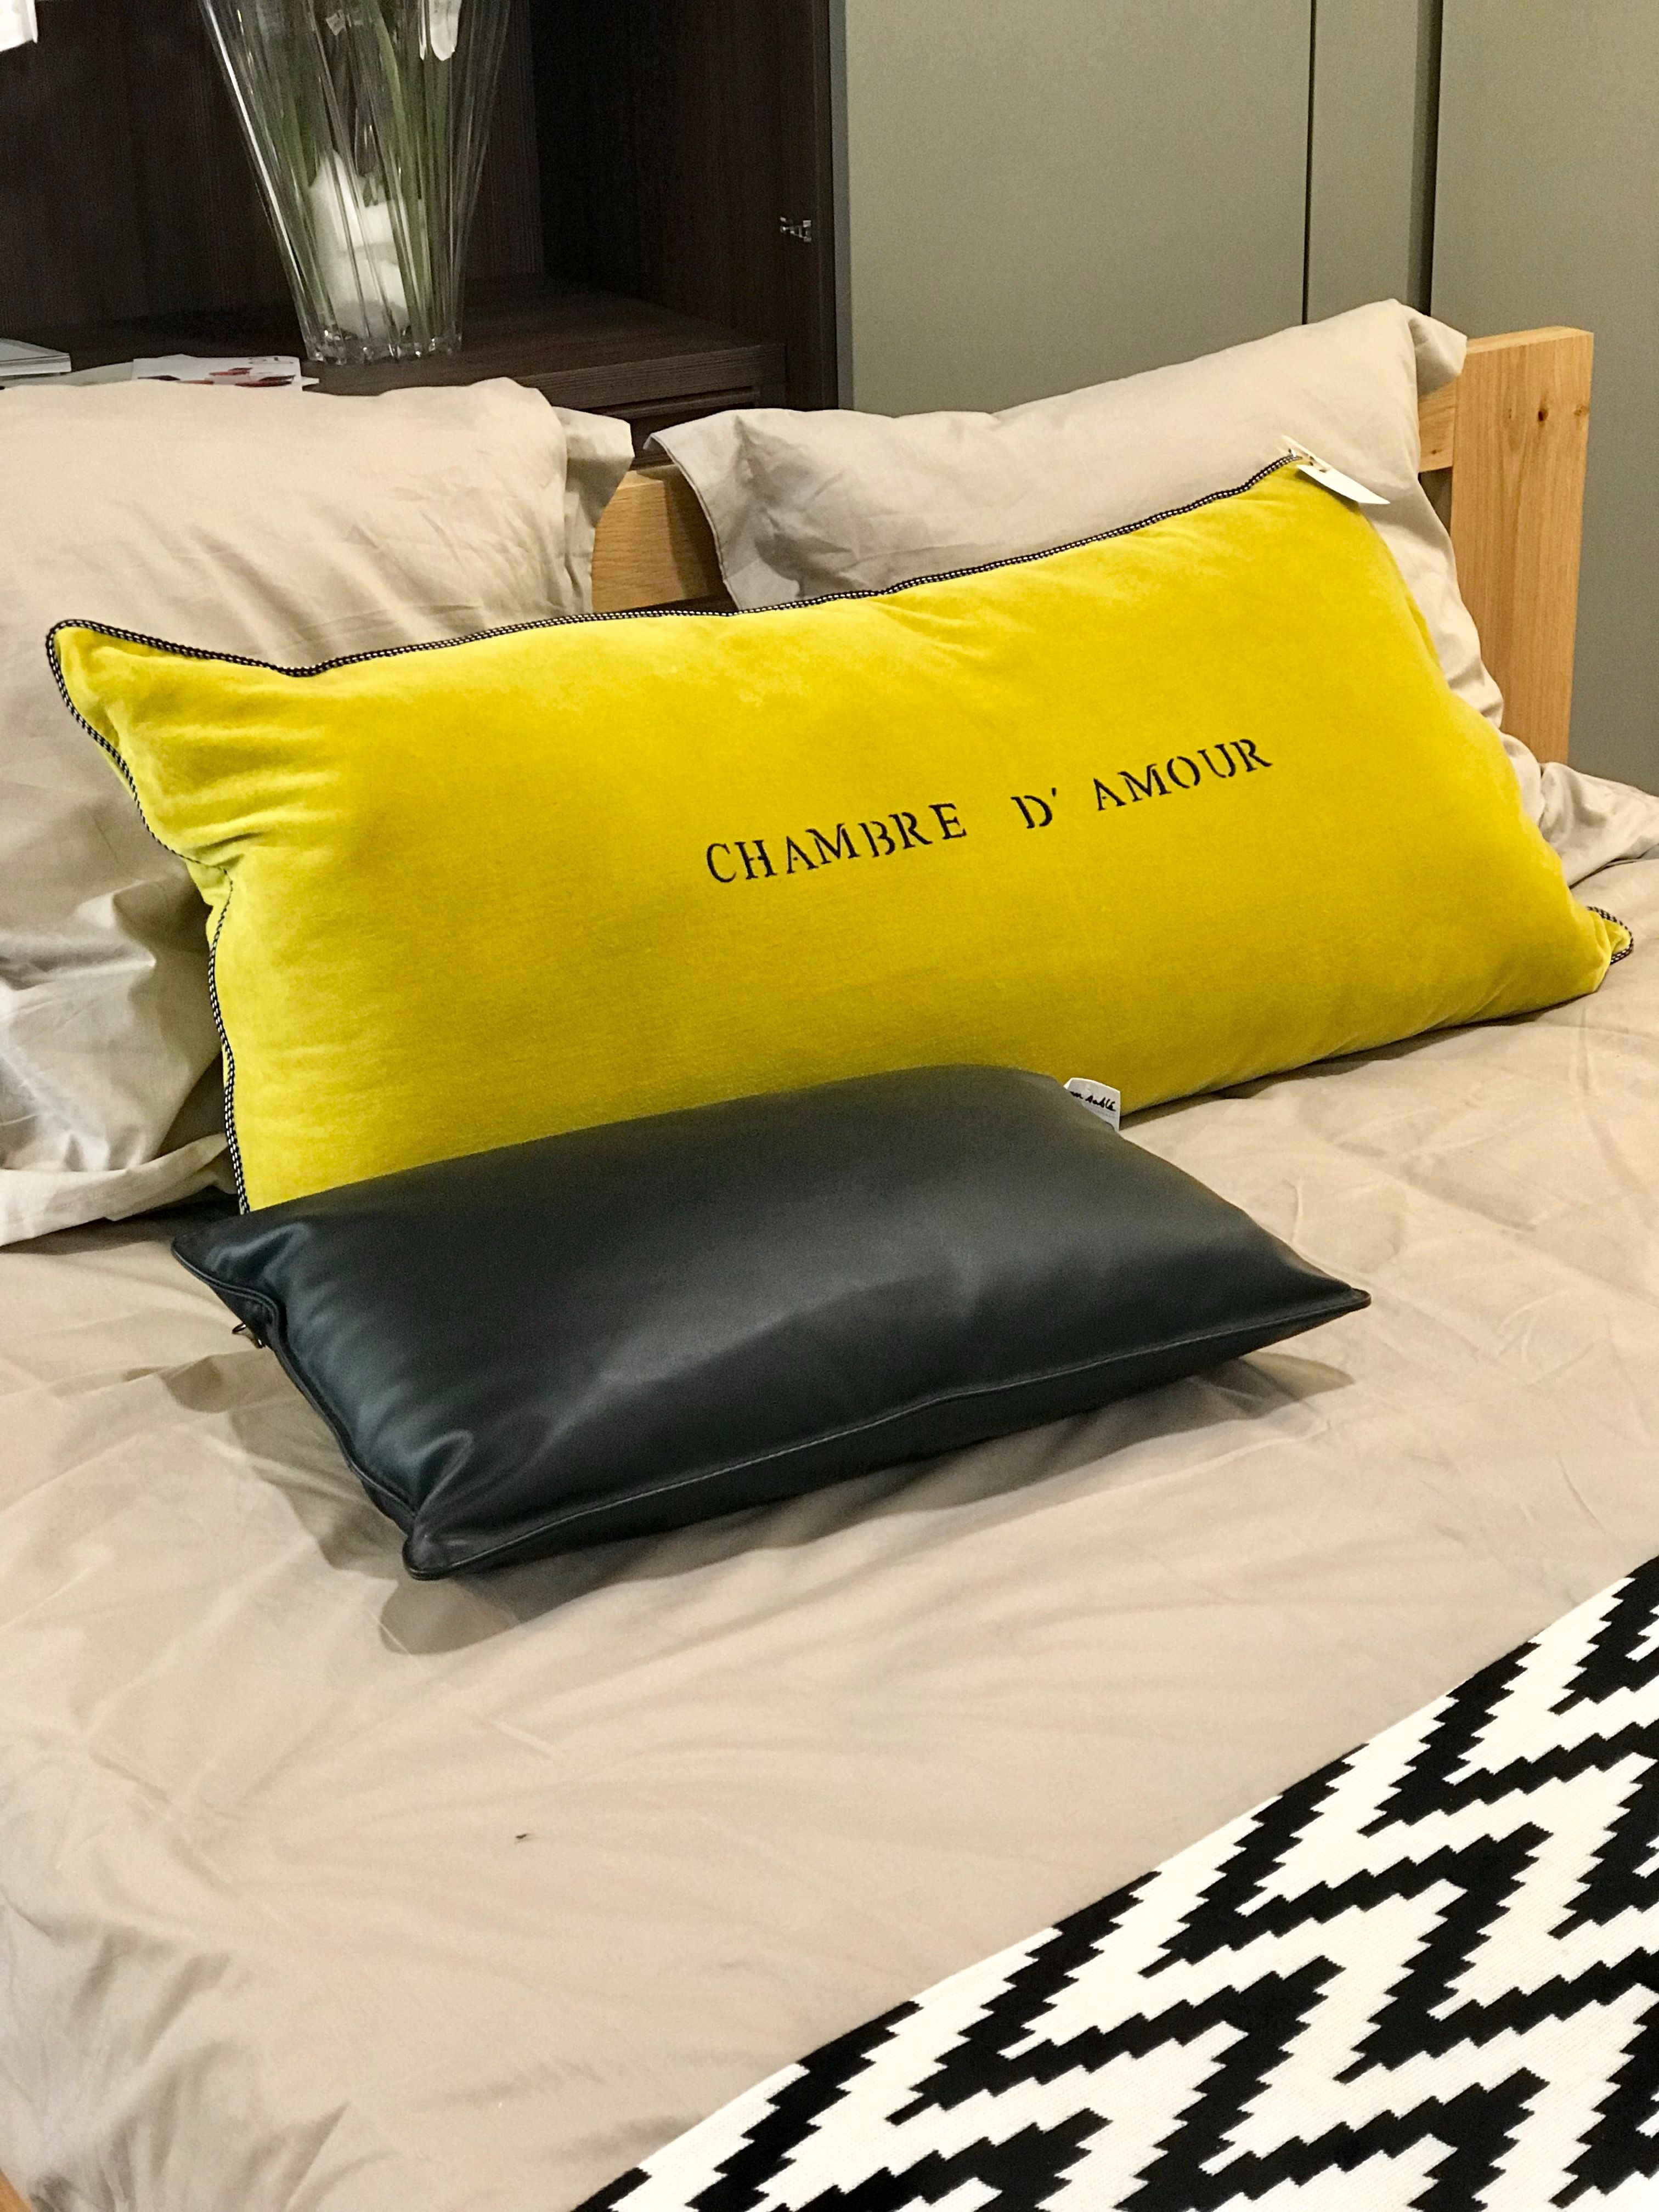 Coussin Chambre D Amour Idee Chambre Chambre D Amour Chambre